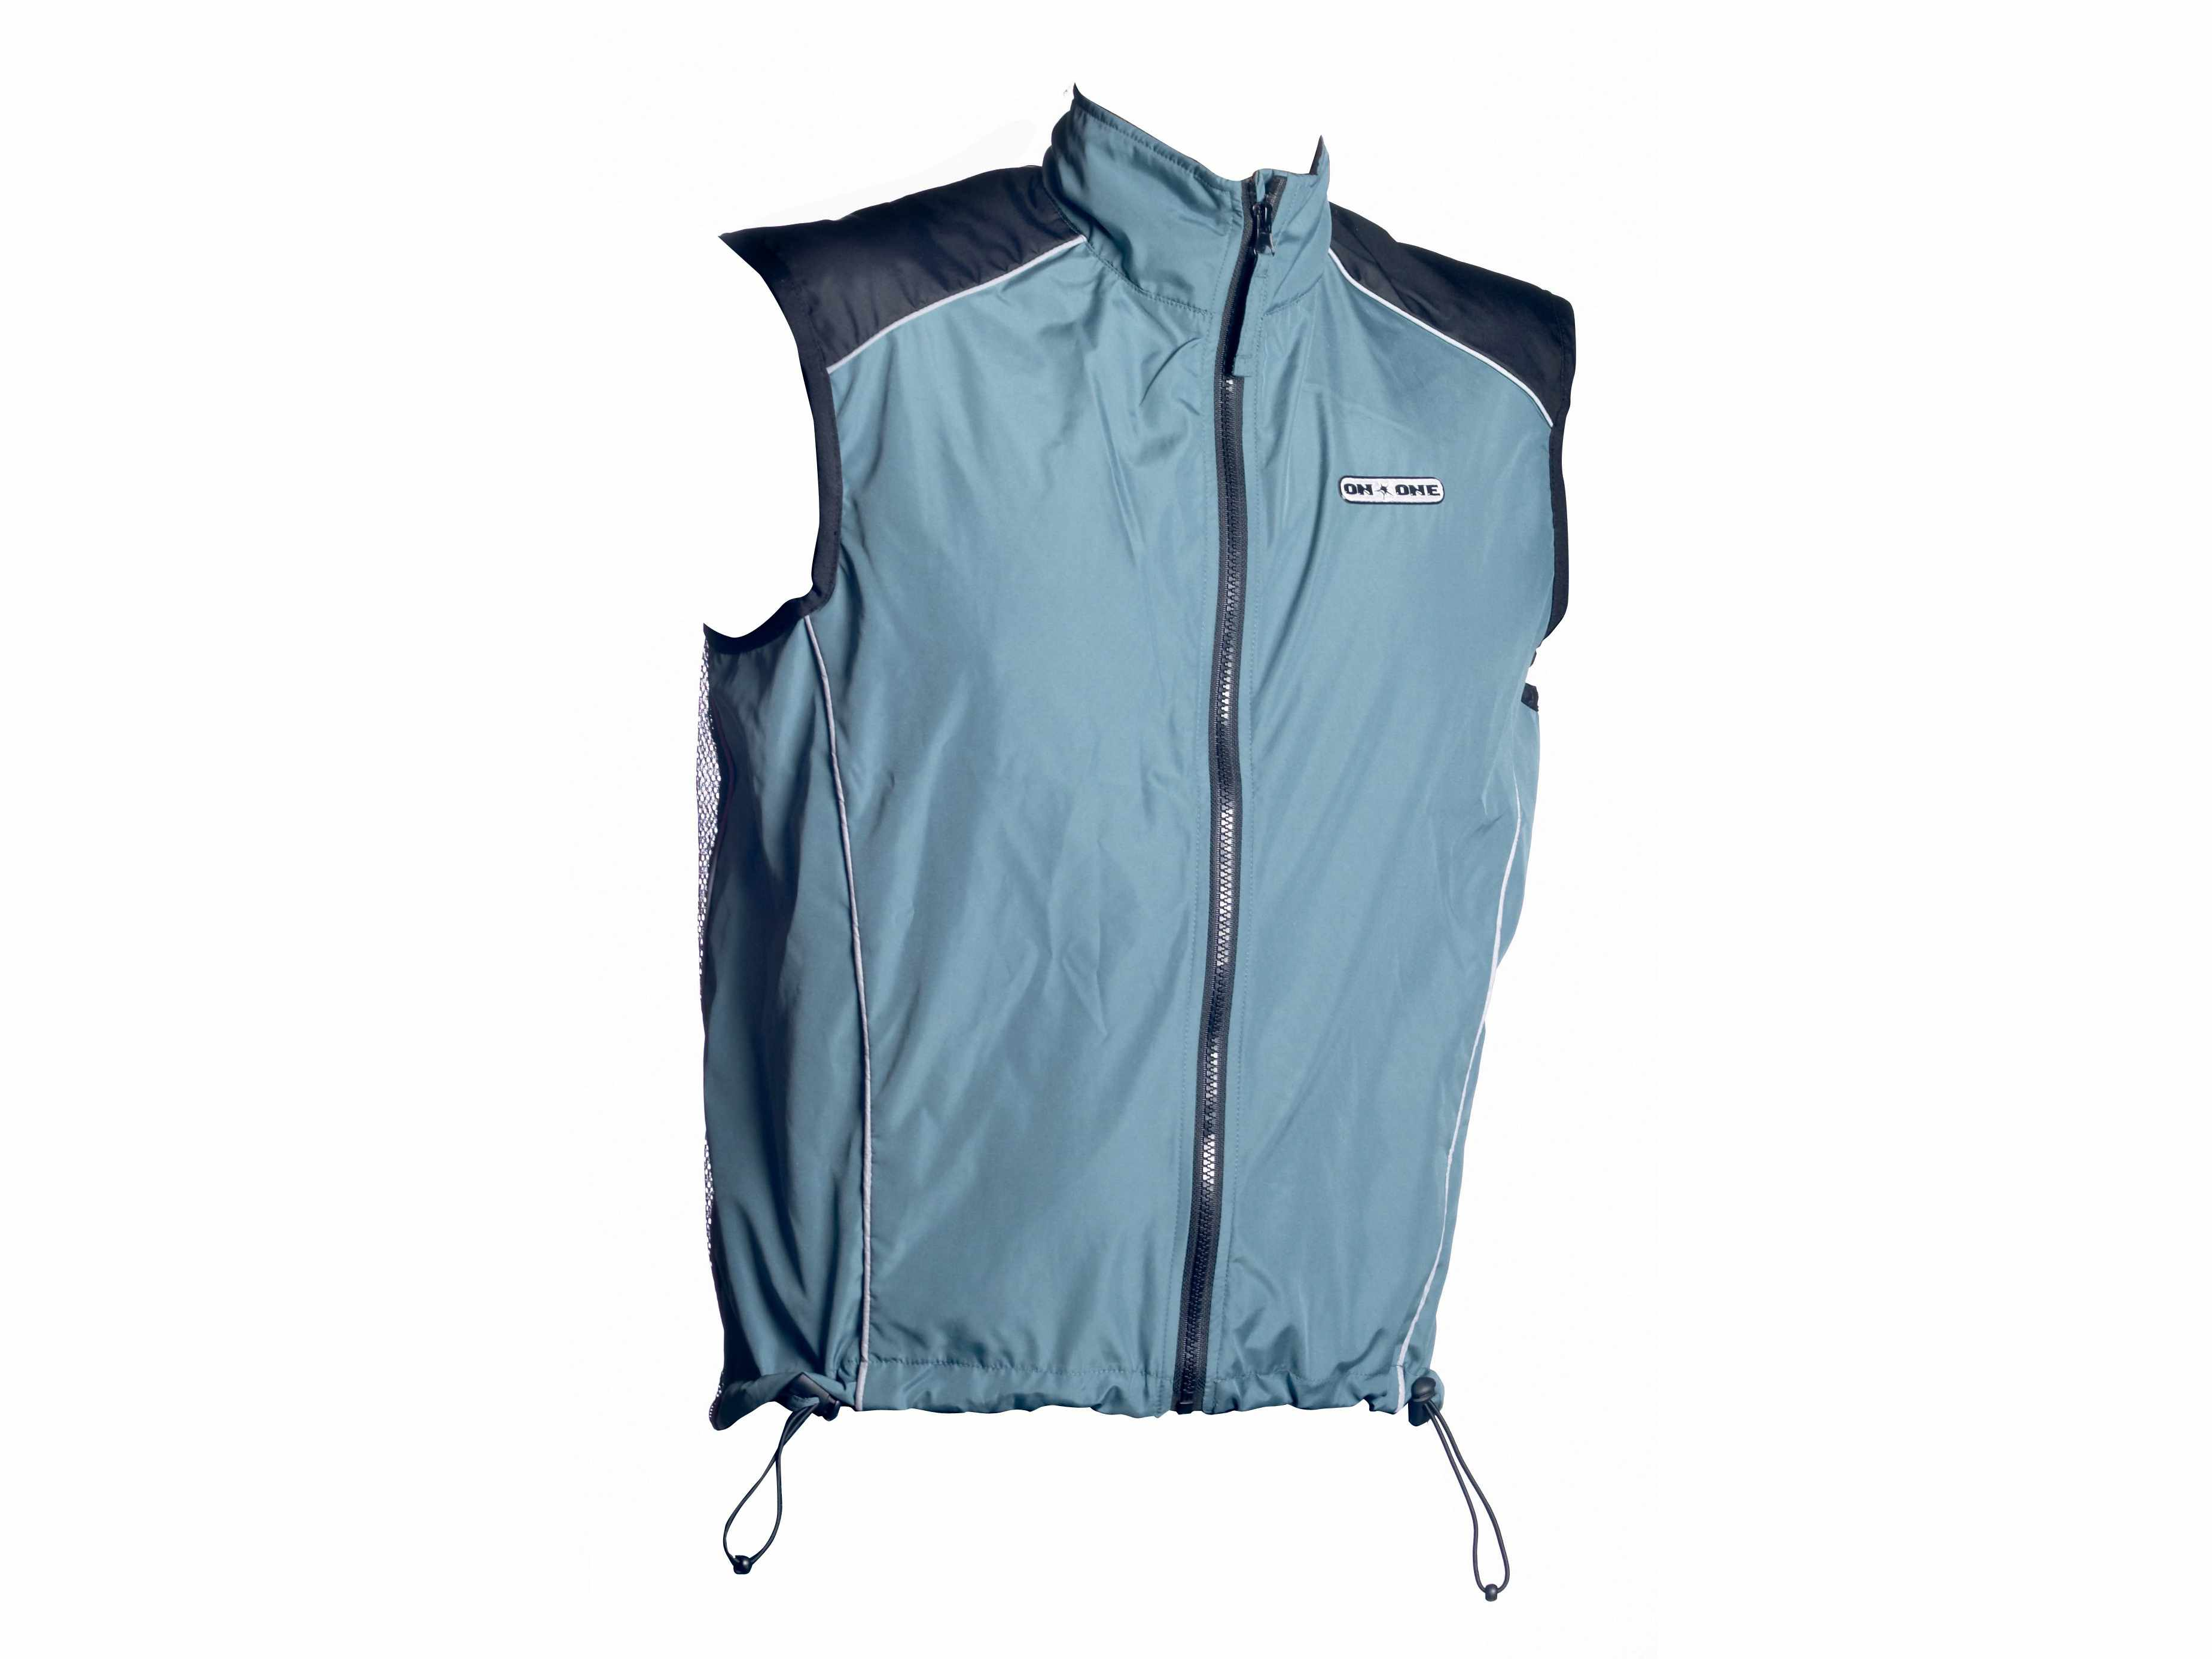 On-One Gilet